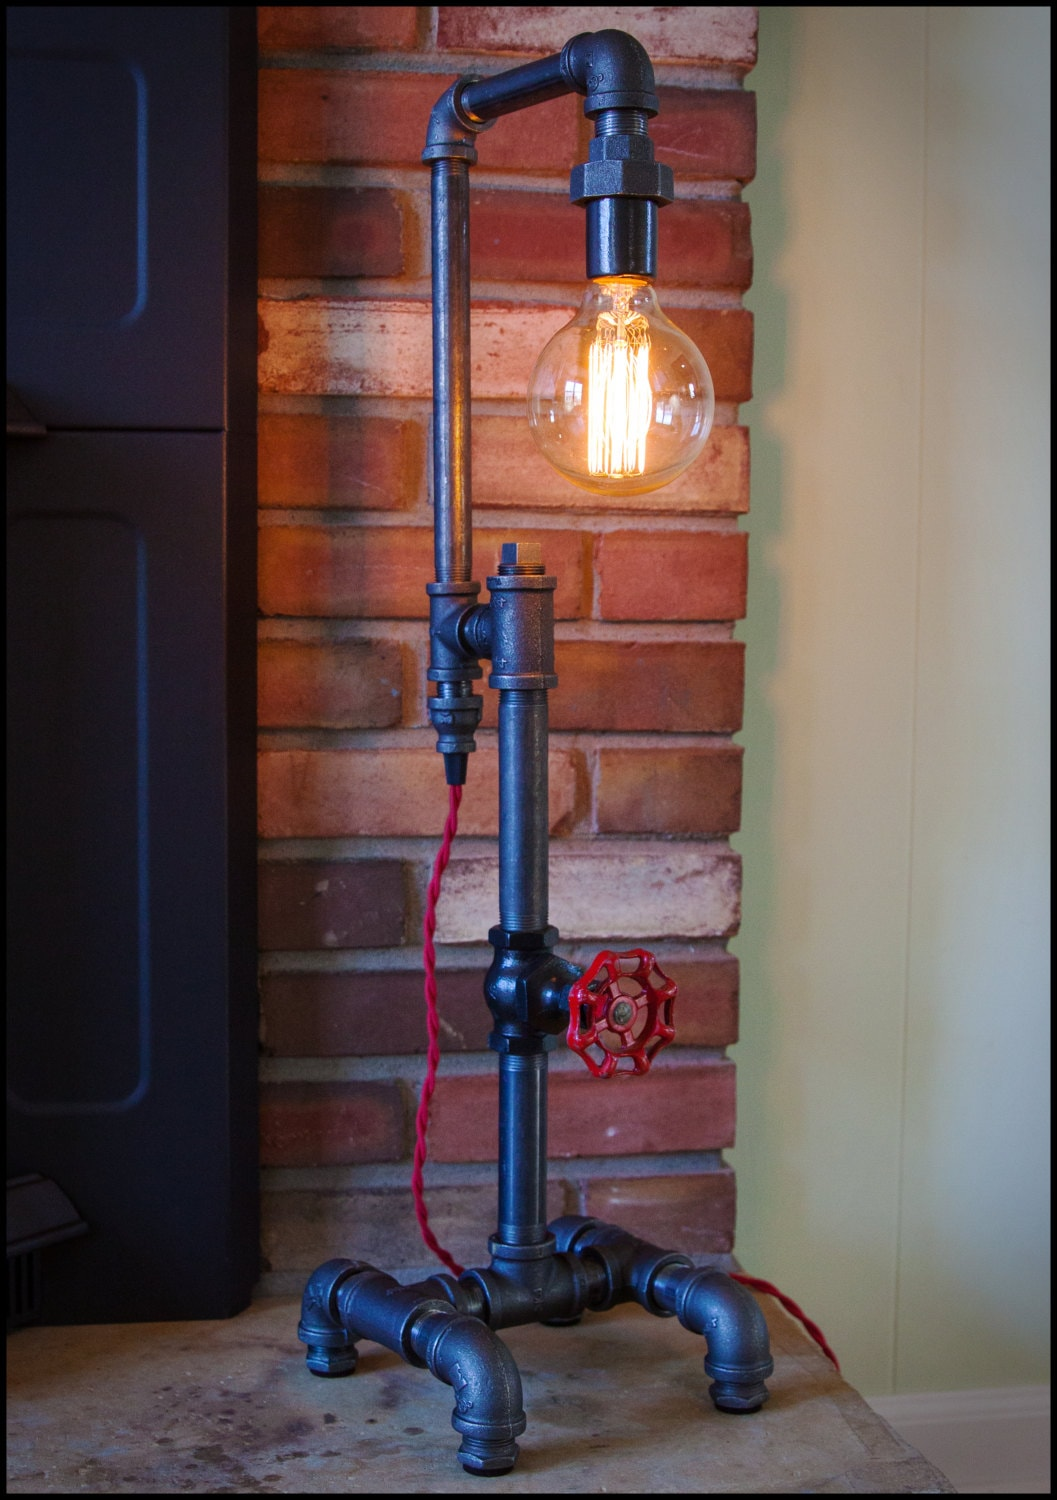 Pipe lamp with red stop valve onoff switch industrial table pipe lamp with red stop valve onoff switch industrial table lamp accent lamp edison bulb lamp man cave steampunk lamp factory geotapseo Images